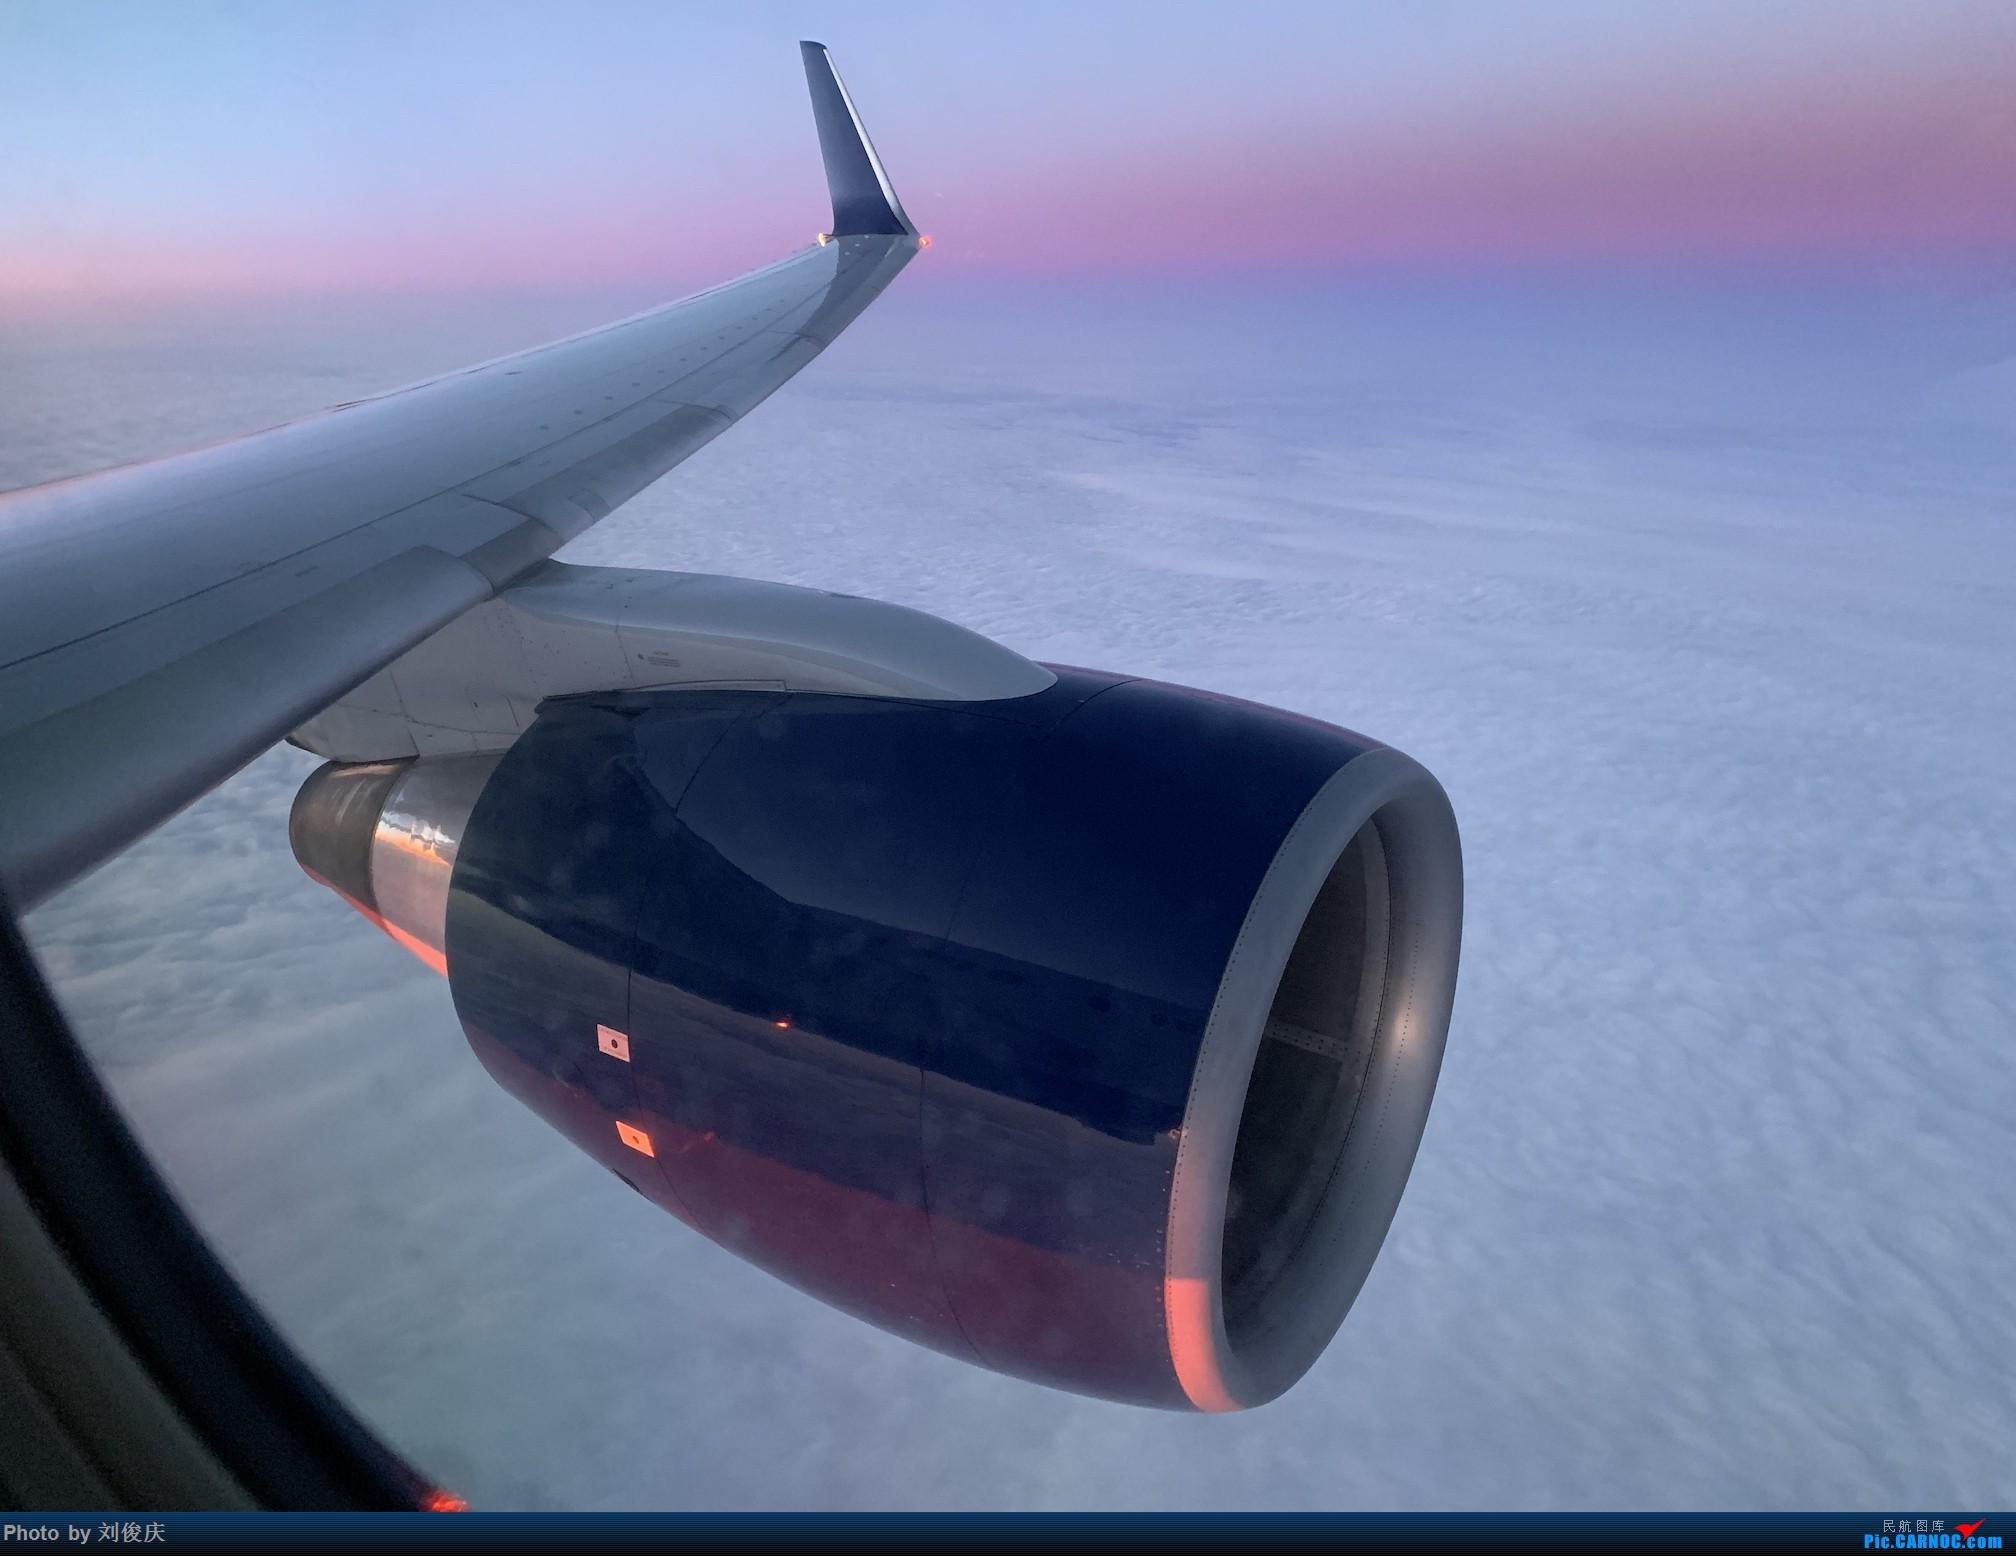 Re:[原创]SEA-LHR-CDG-FCO 8天3国5城暴走游记 BOEING 757-200S N707TW In the Air